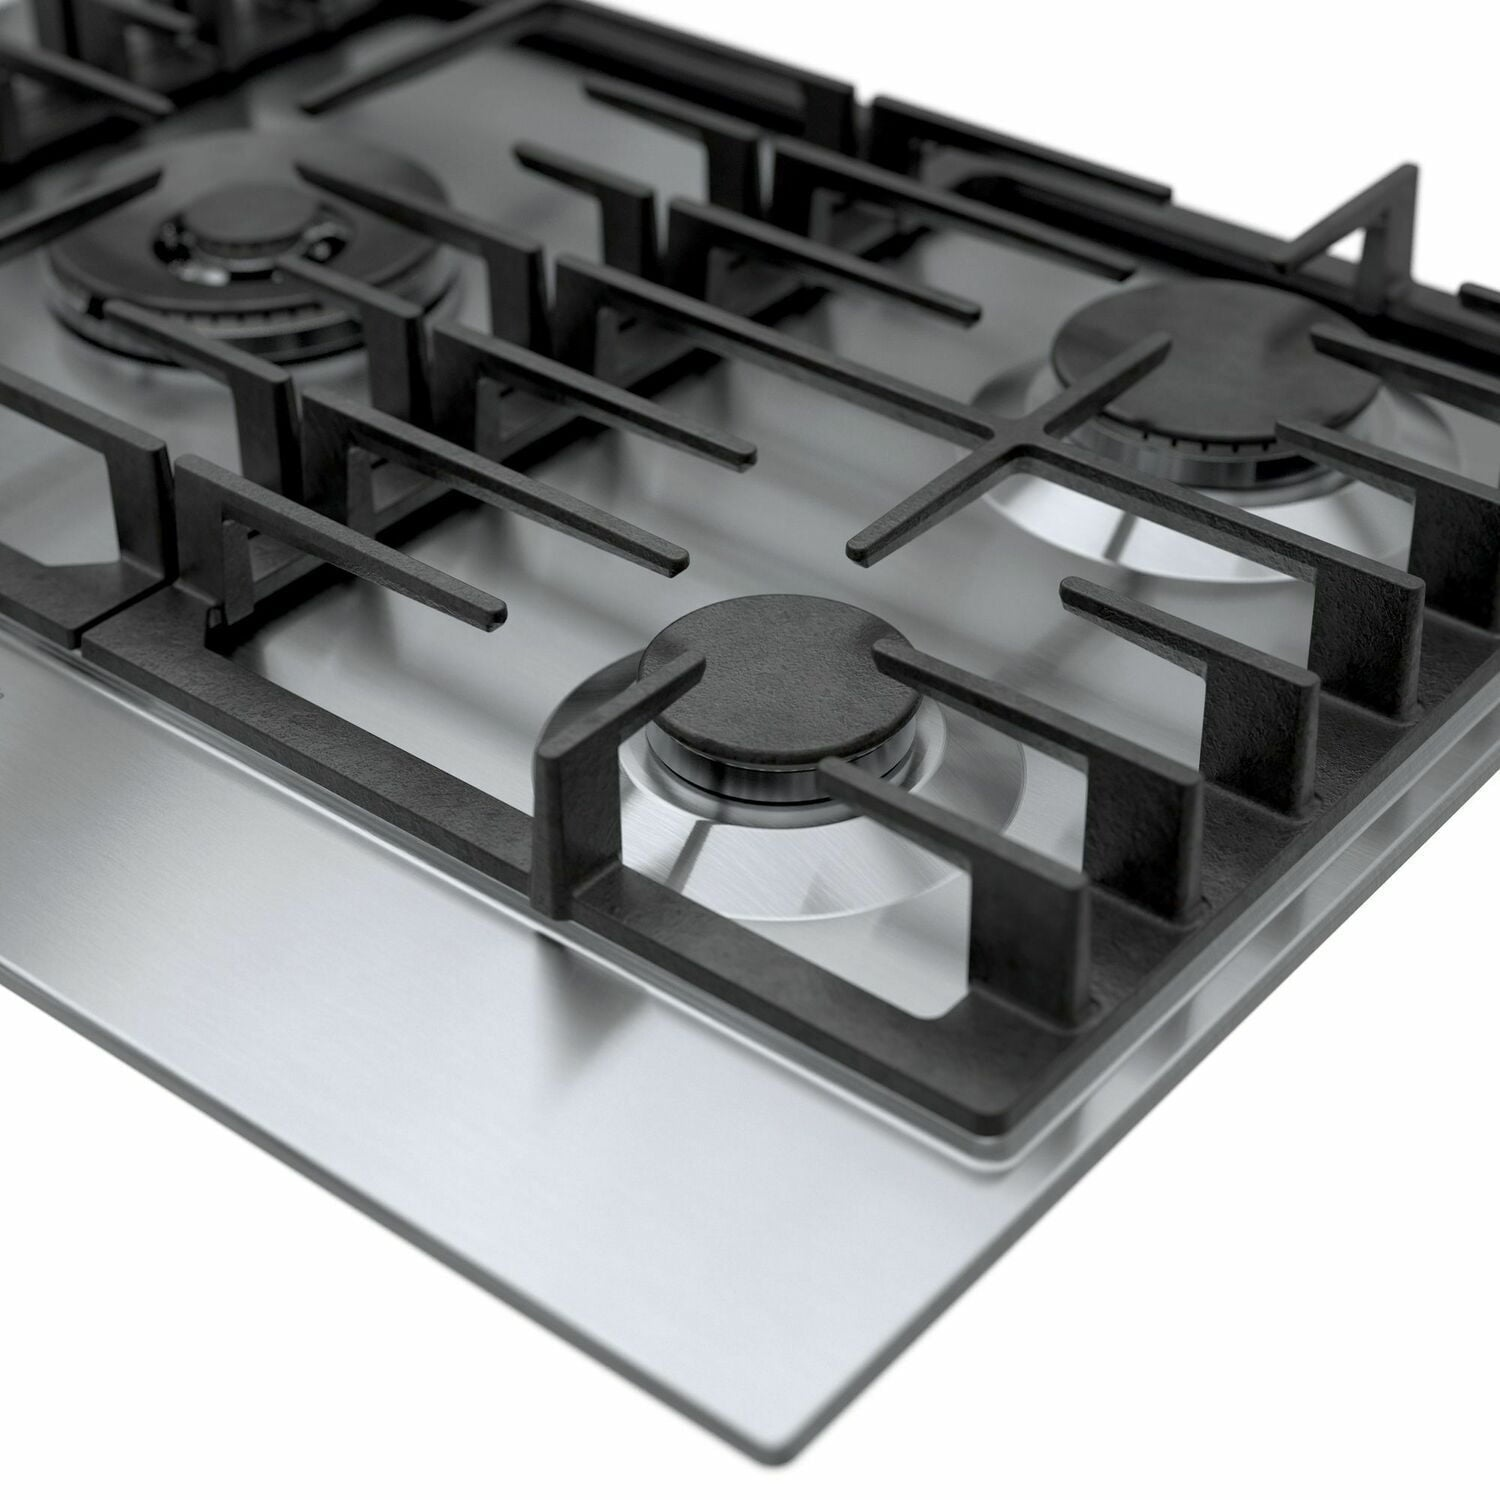 Load image into Gallery viewer, Bosch NGM8657UC 800 Series Gas Cooktop 36'' Stainless Steel Ngm8657Uc